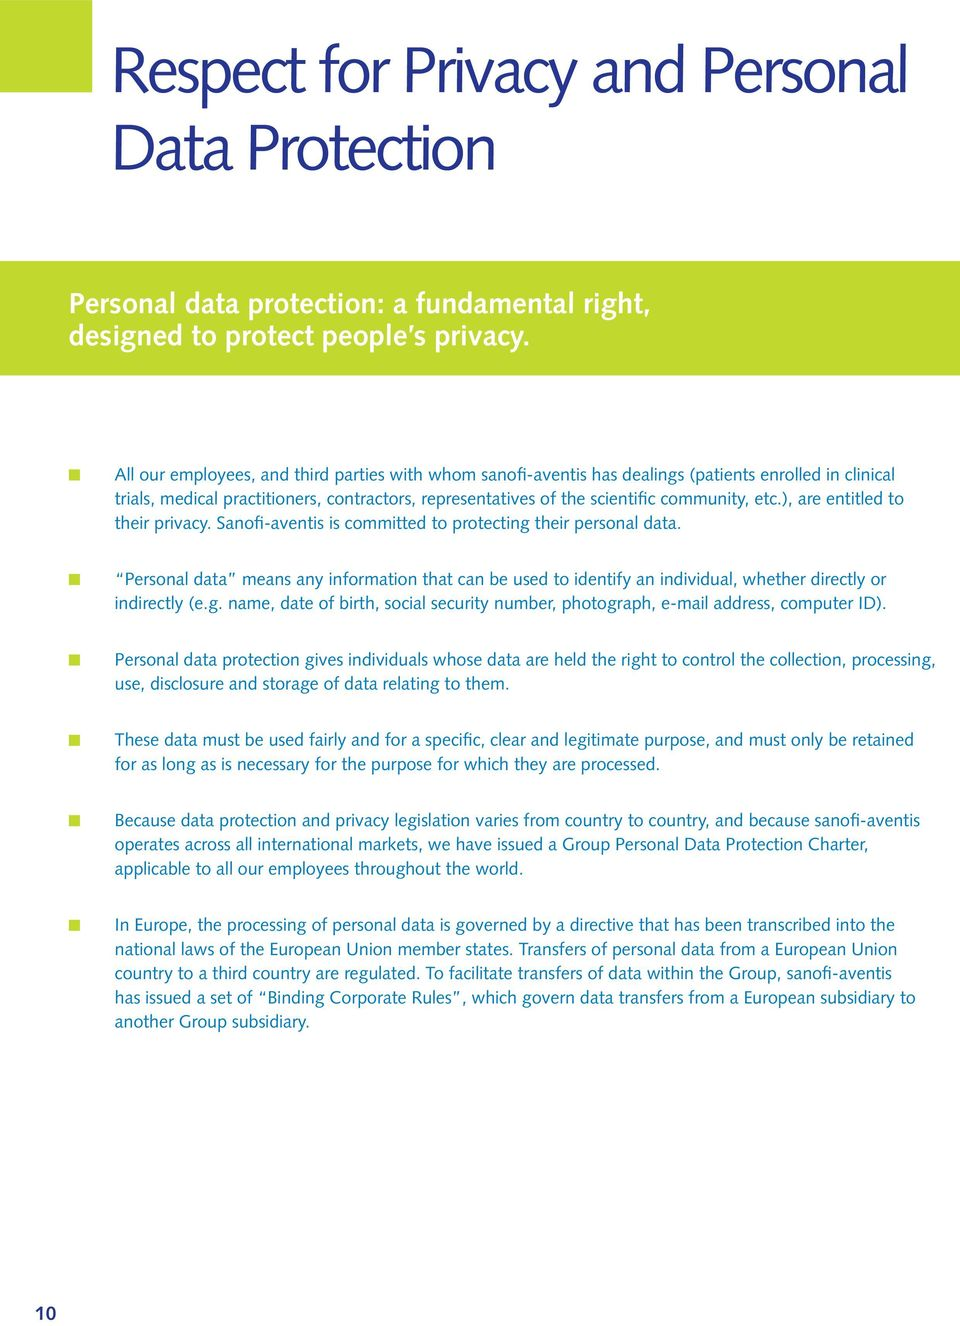 ), are entitled to their privacy. Sanofi-aventis is committed to protecting their personal data.